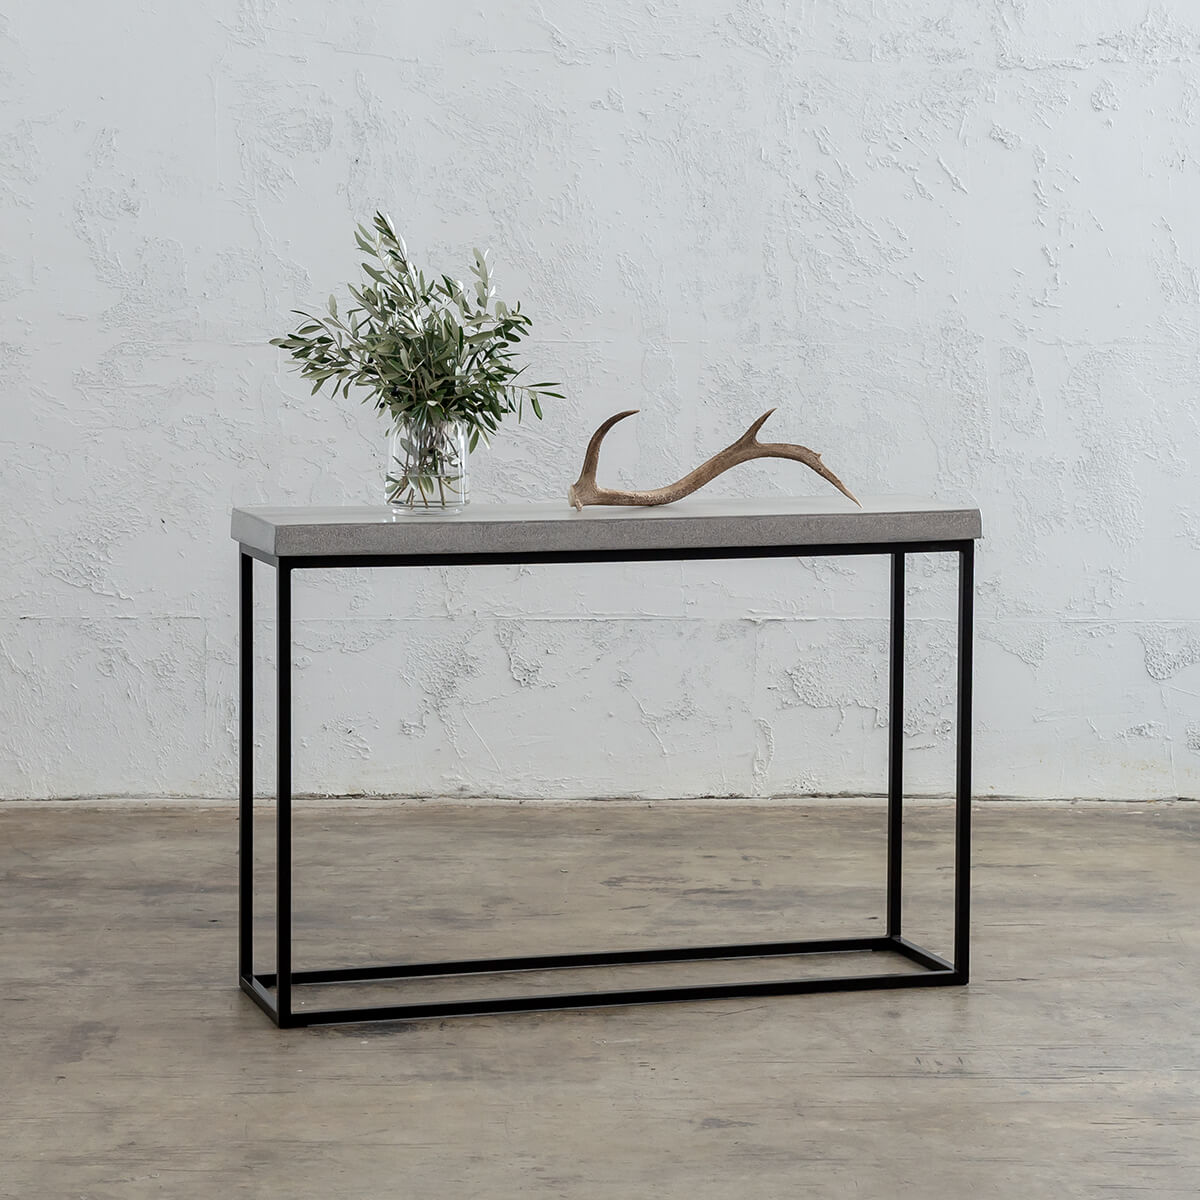 ARIA CONCRETE GRANITE CONSOLE HALL TABLE   |  CONCRETE TABLE